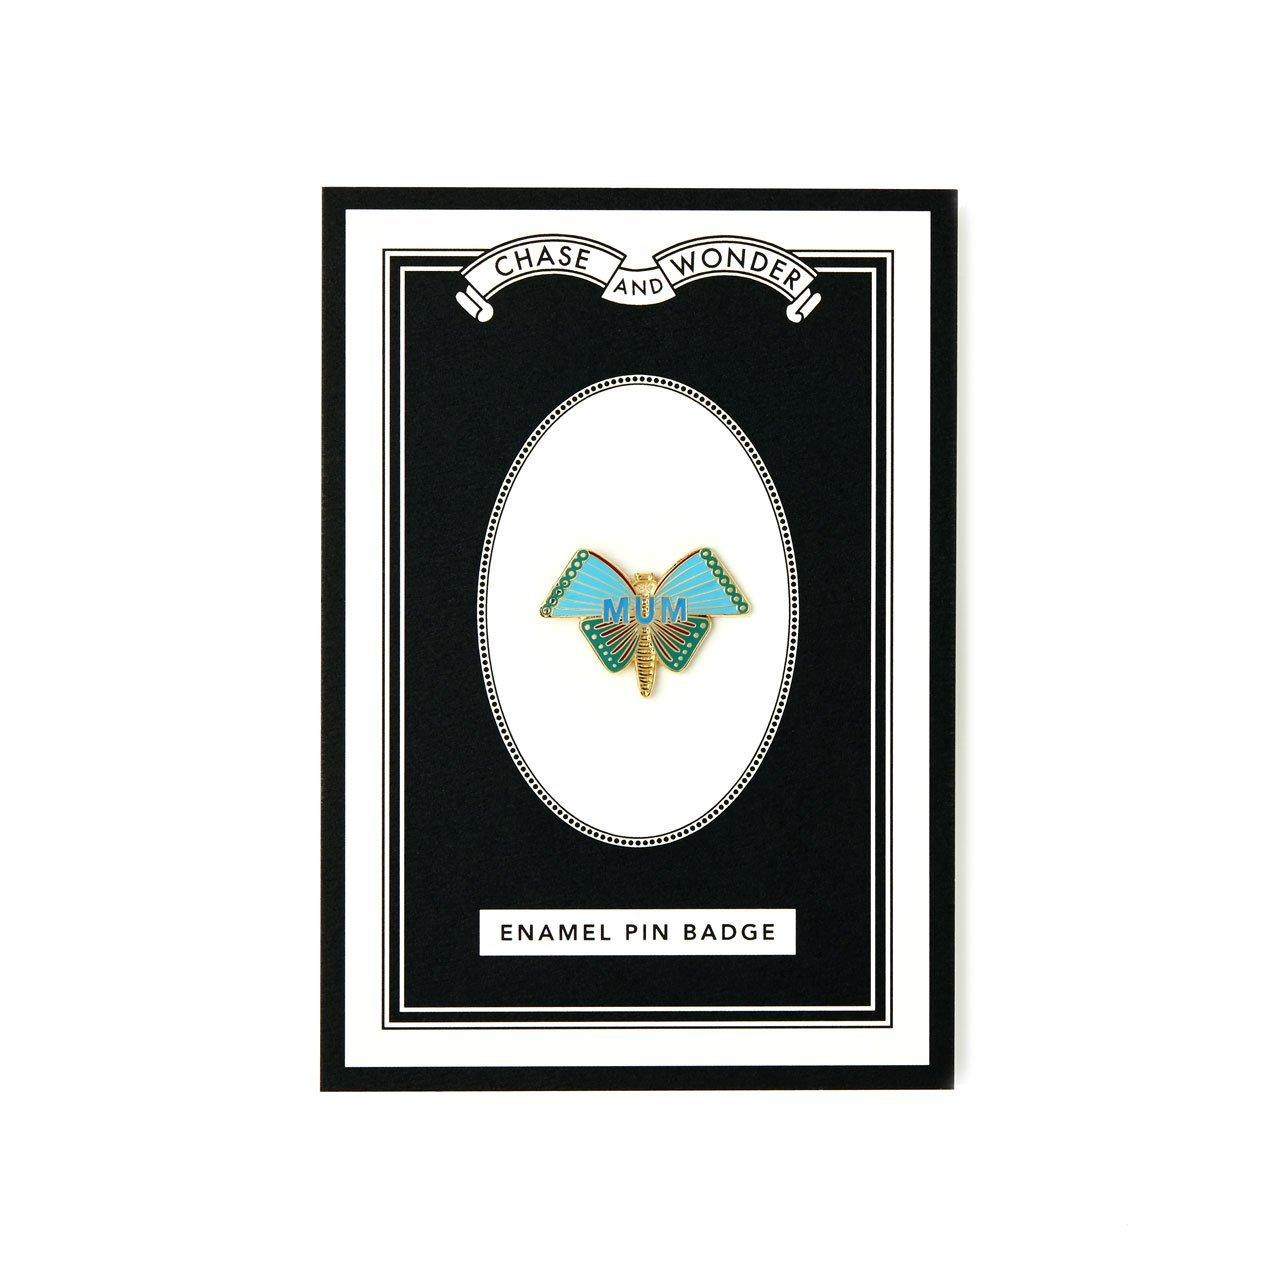 Butterfly Mum Enameled Pin Badge - Chase and Wonder - Proudly Made in Britain